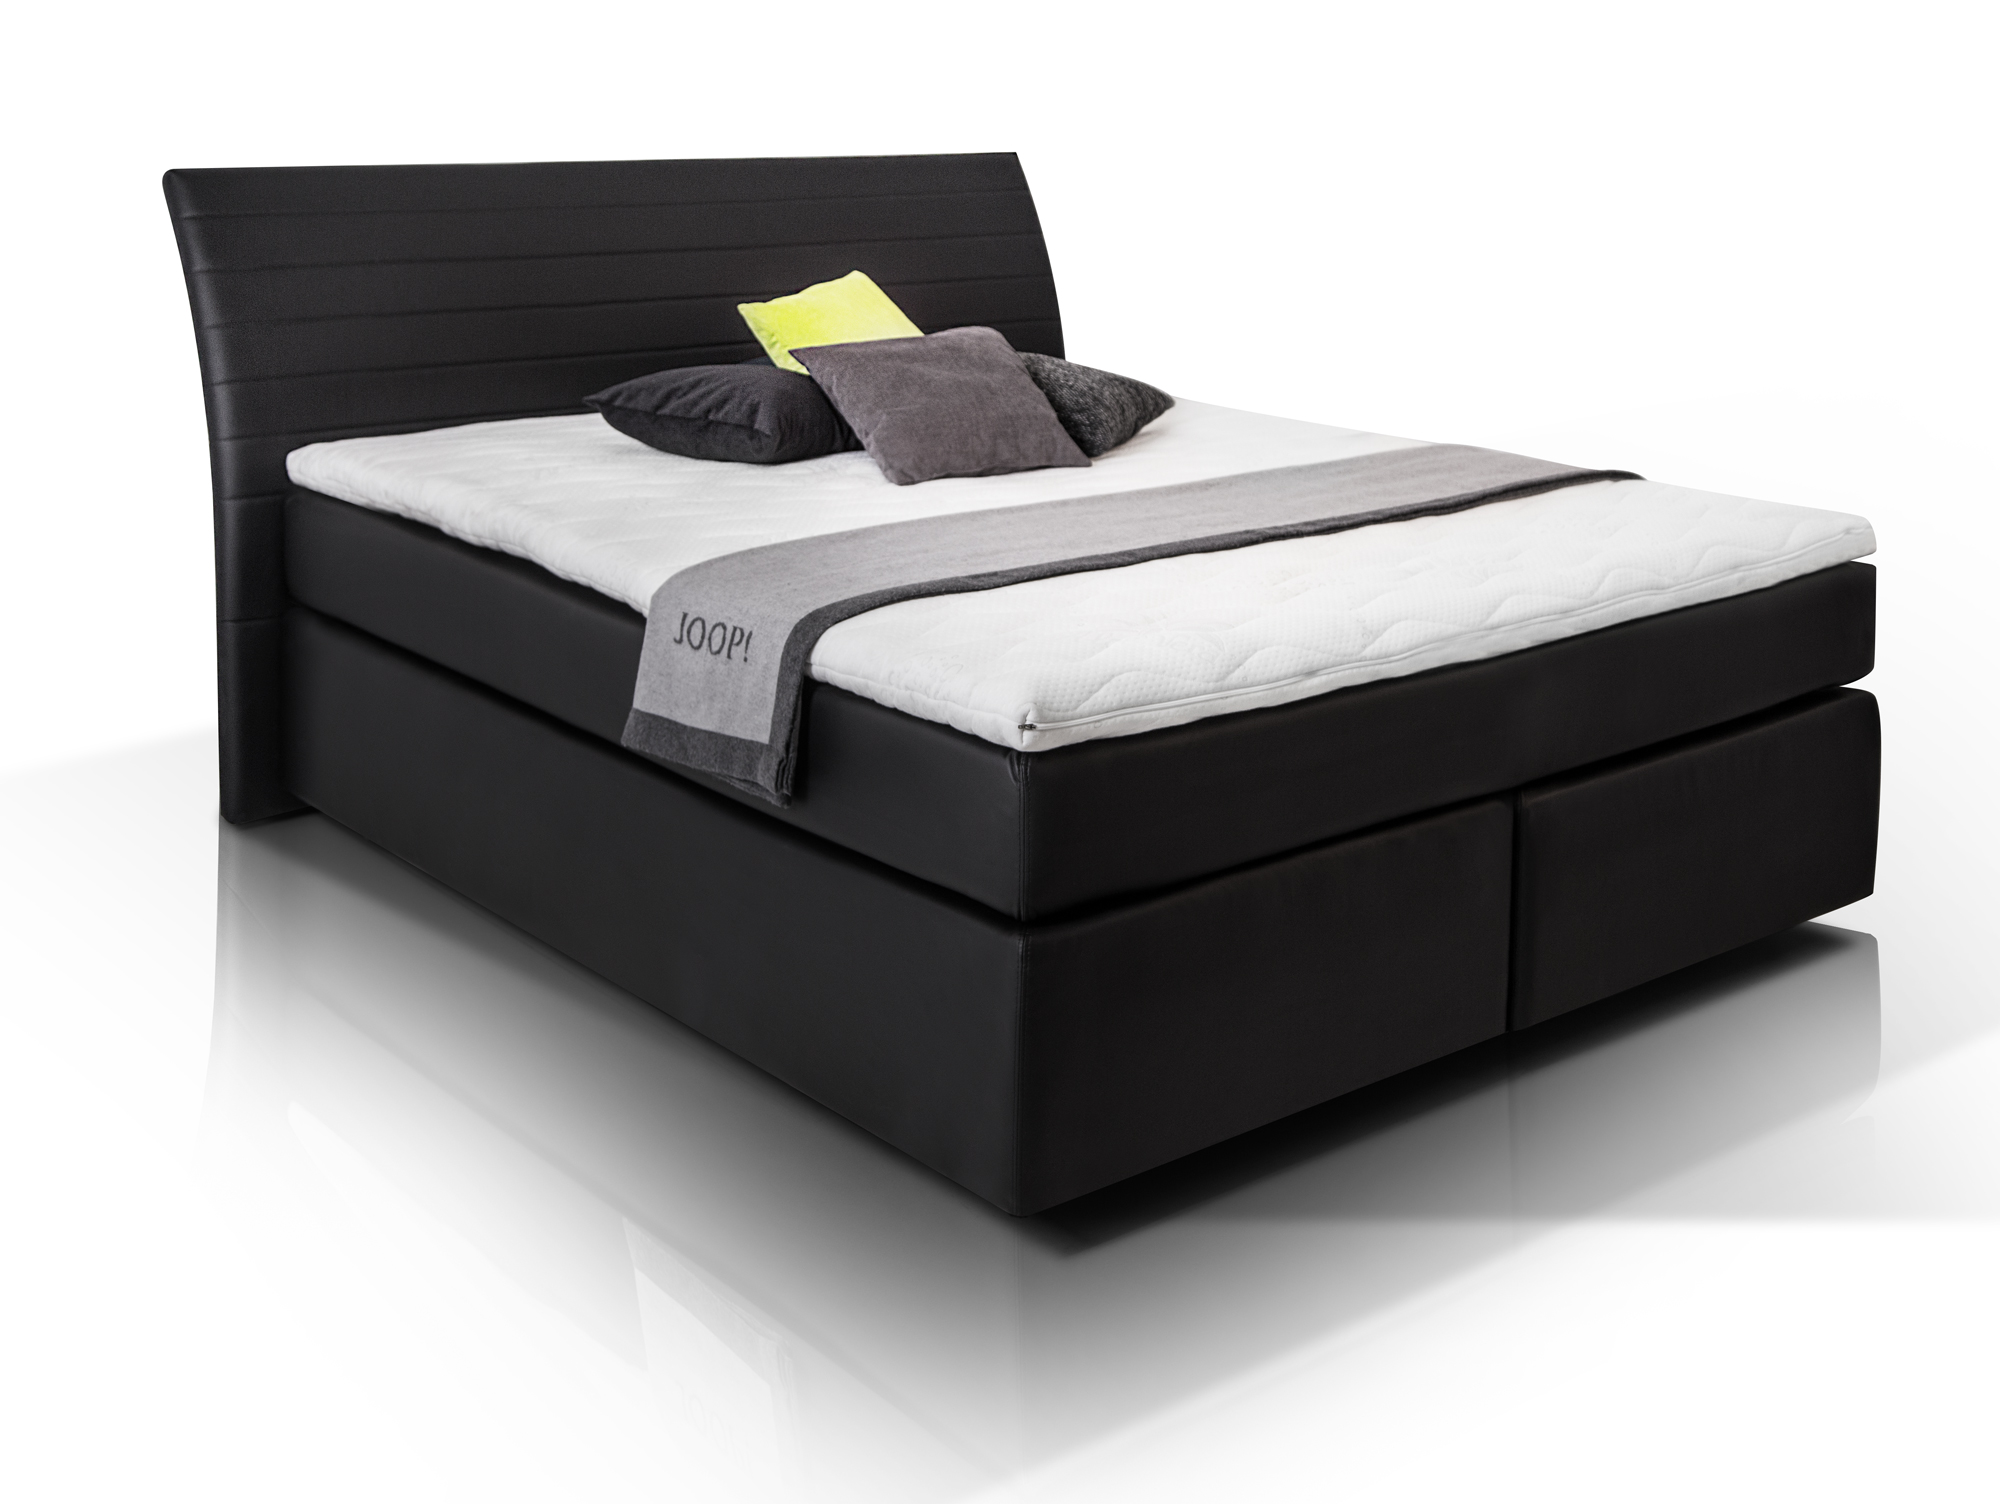 heaven boxspringbett kunstlederbezug 180 x 200 cm schwarz h rtegrad 2. Black Bedroom Furniture Sets. Home Design Ideas